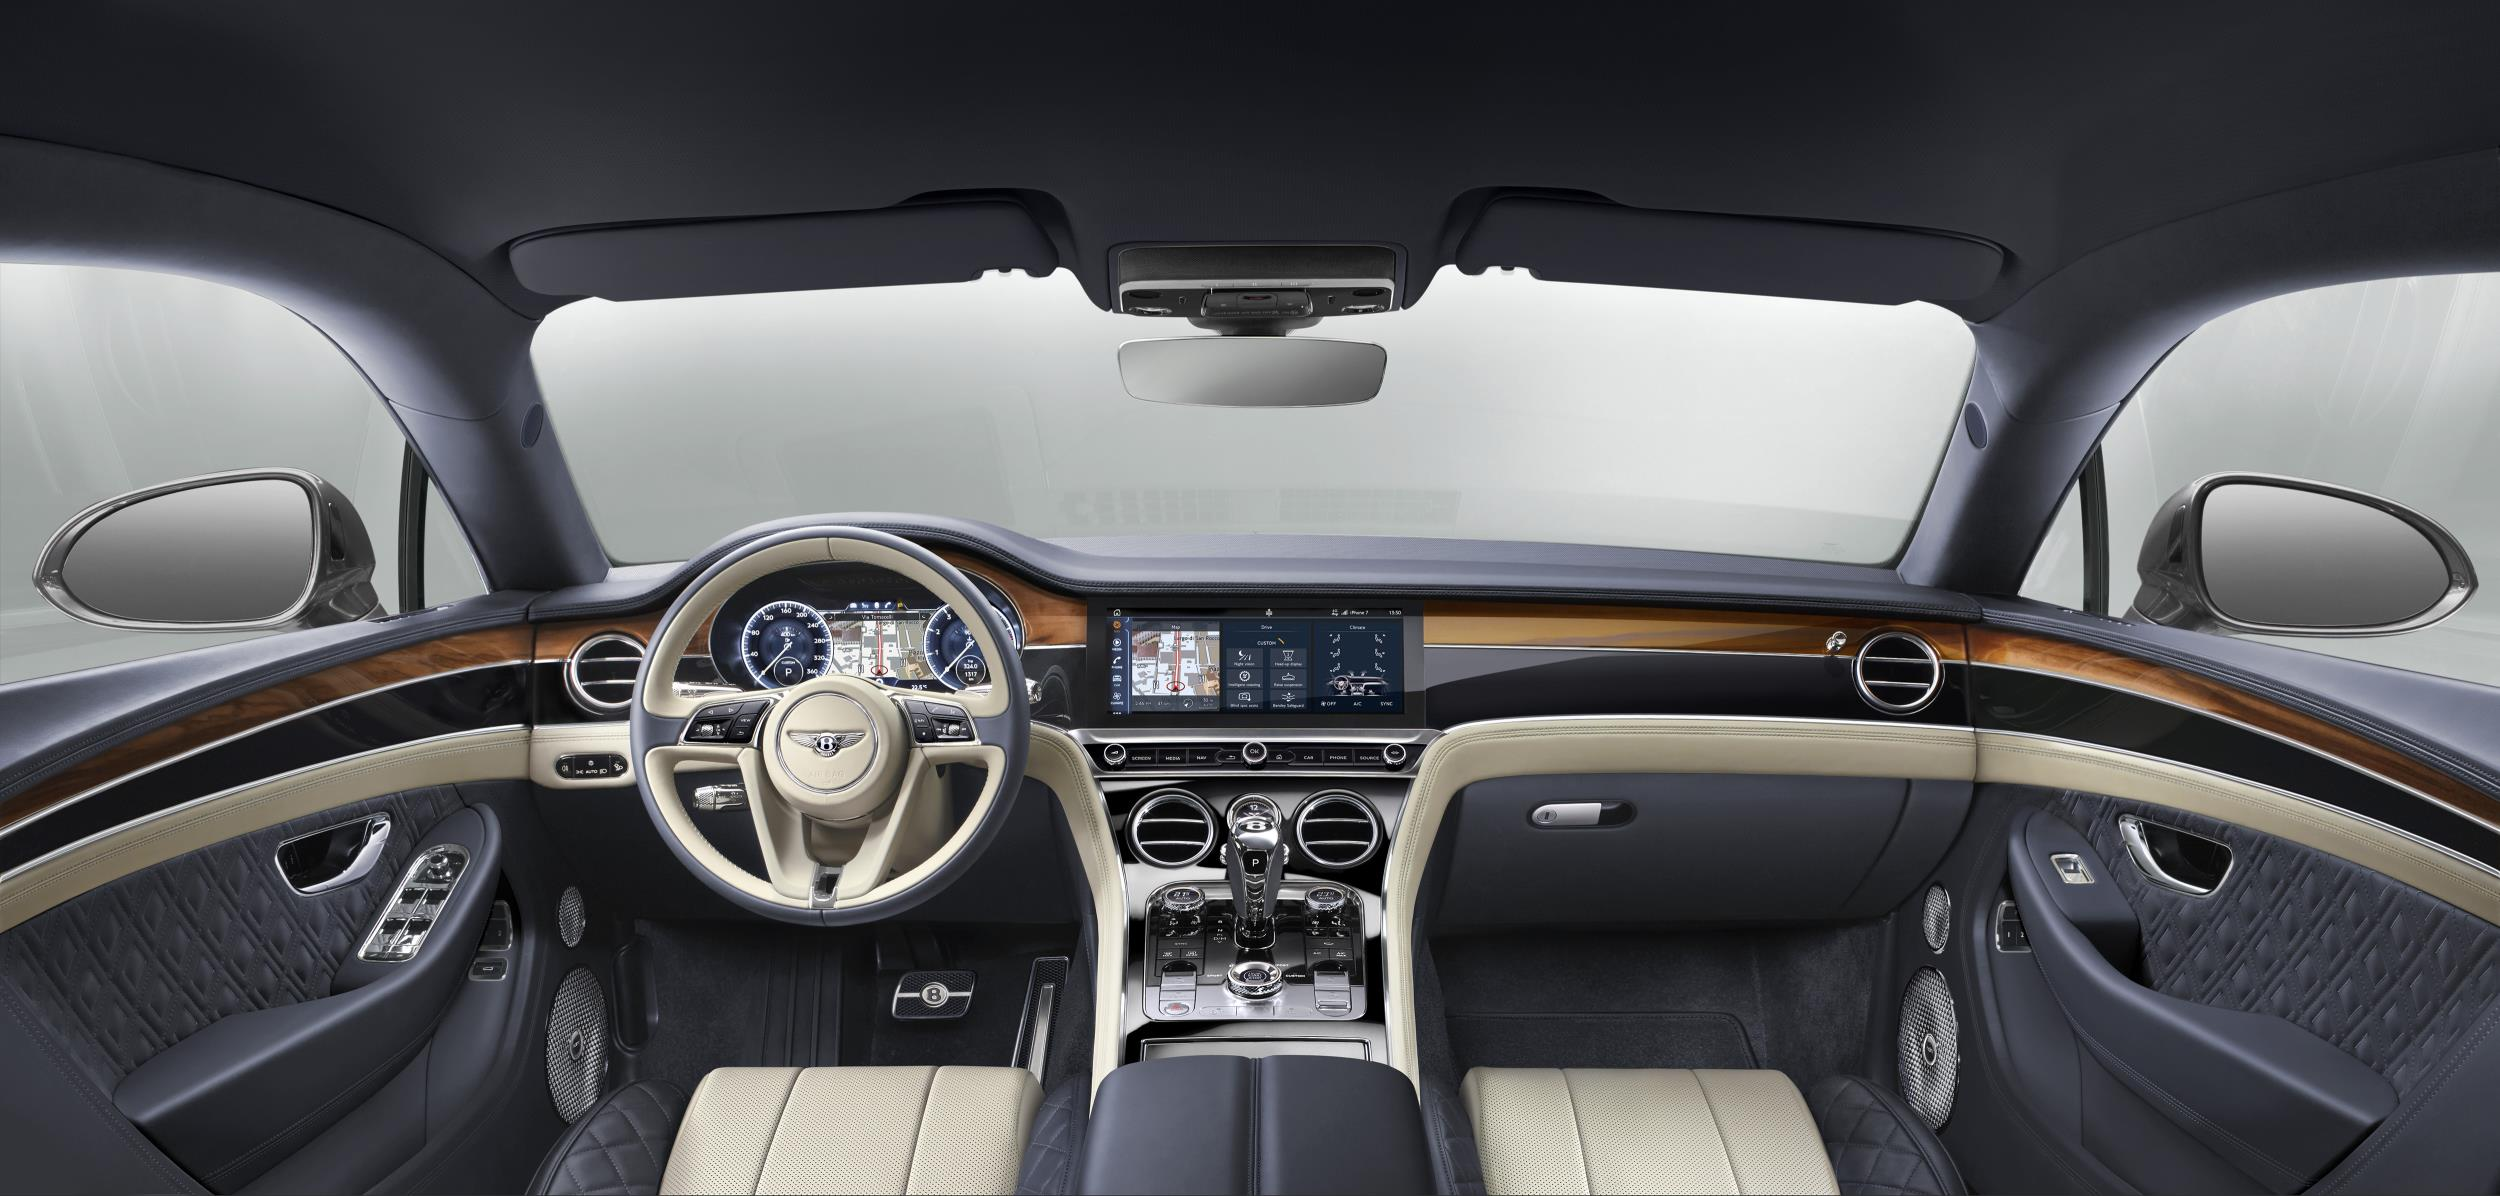 Bentley Continental GT interior 2018